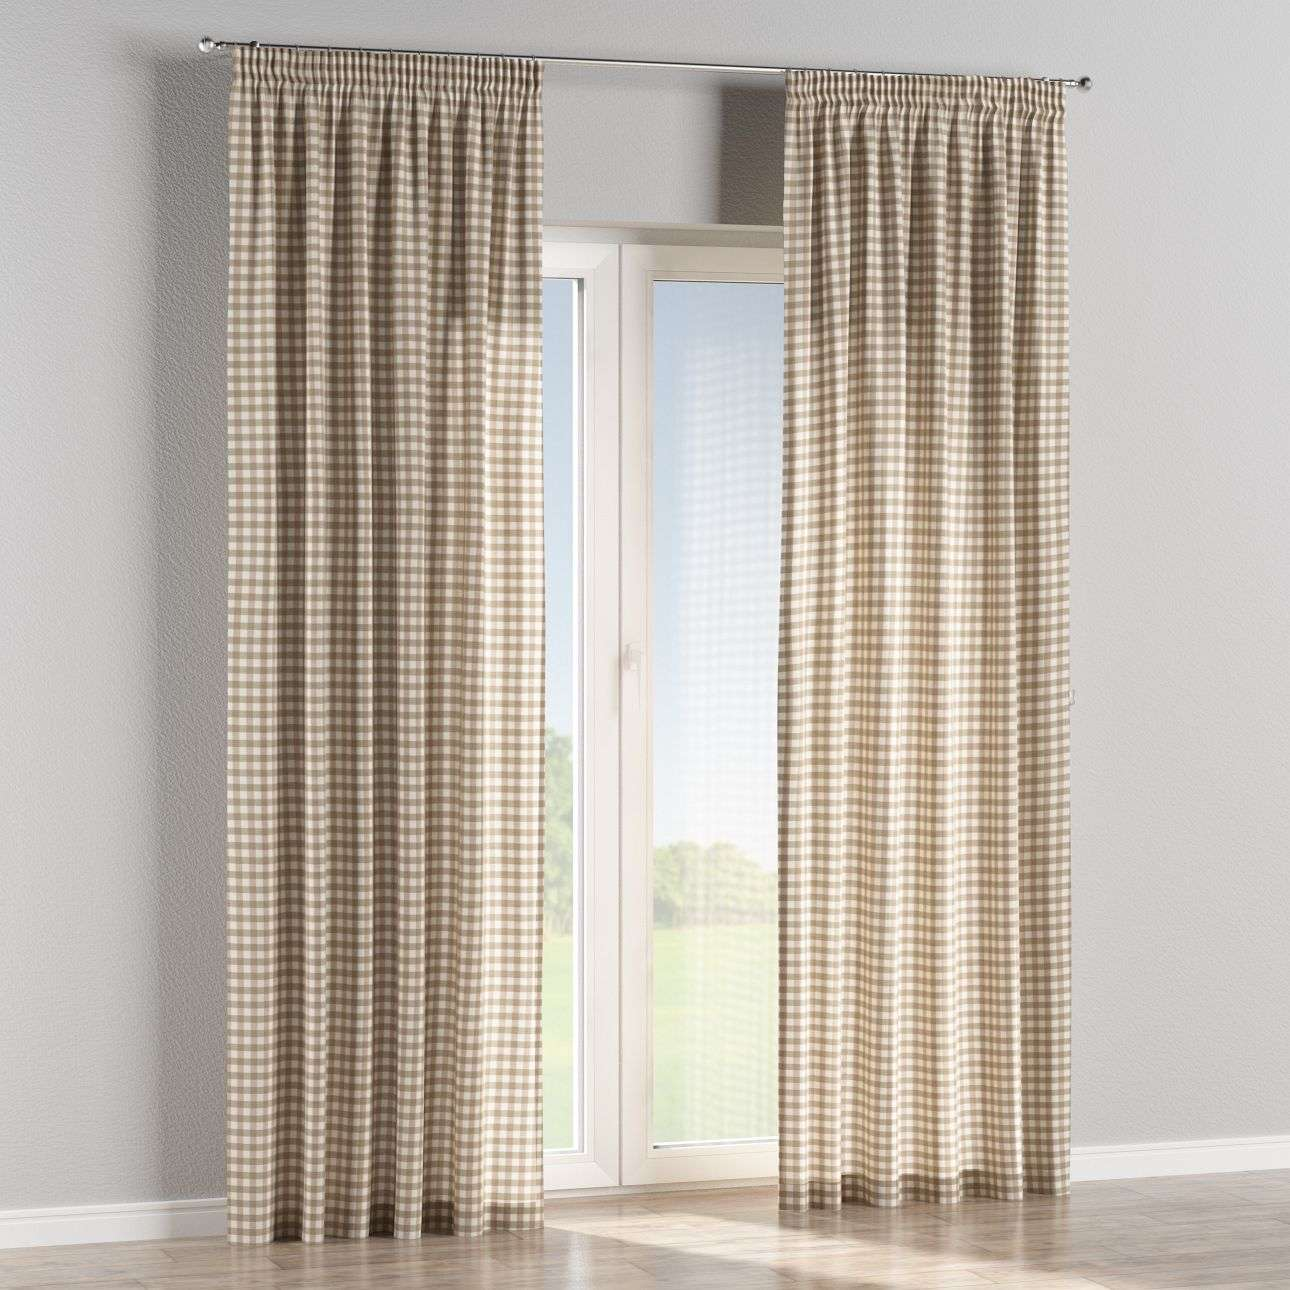 Pencil pleat curtains in collection Quadro, fabric: 136-06